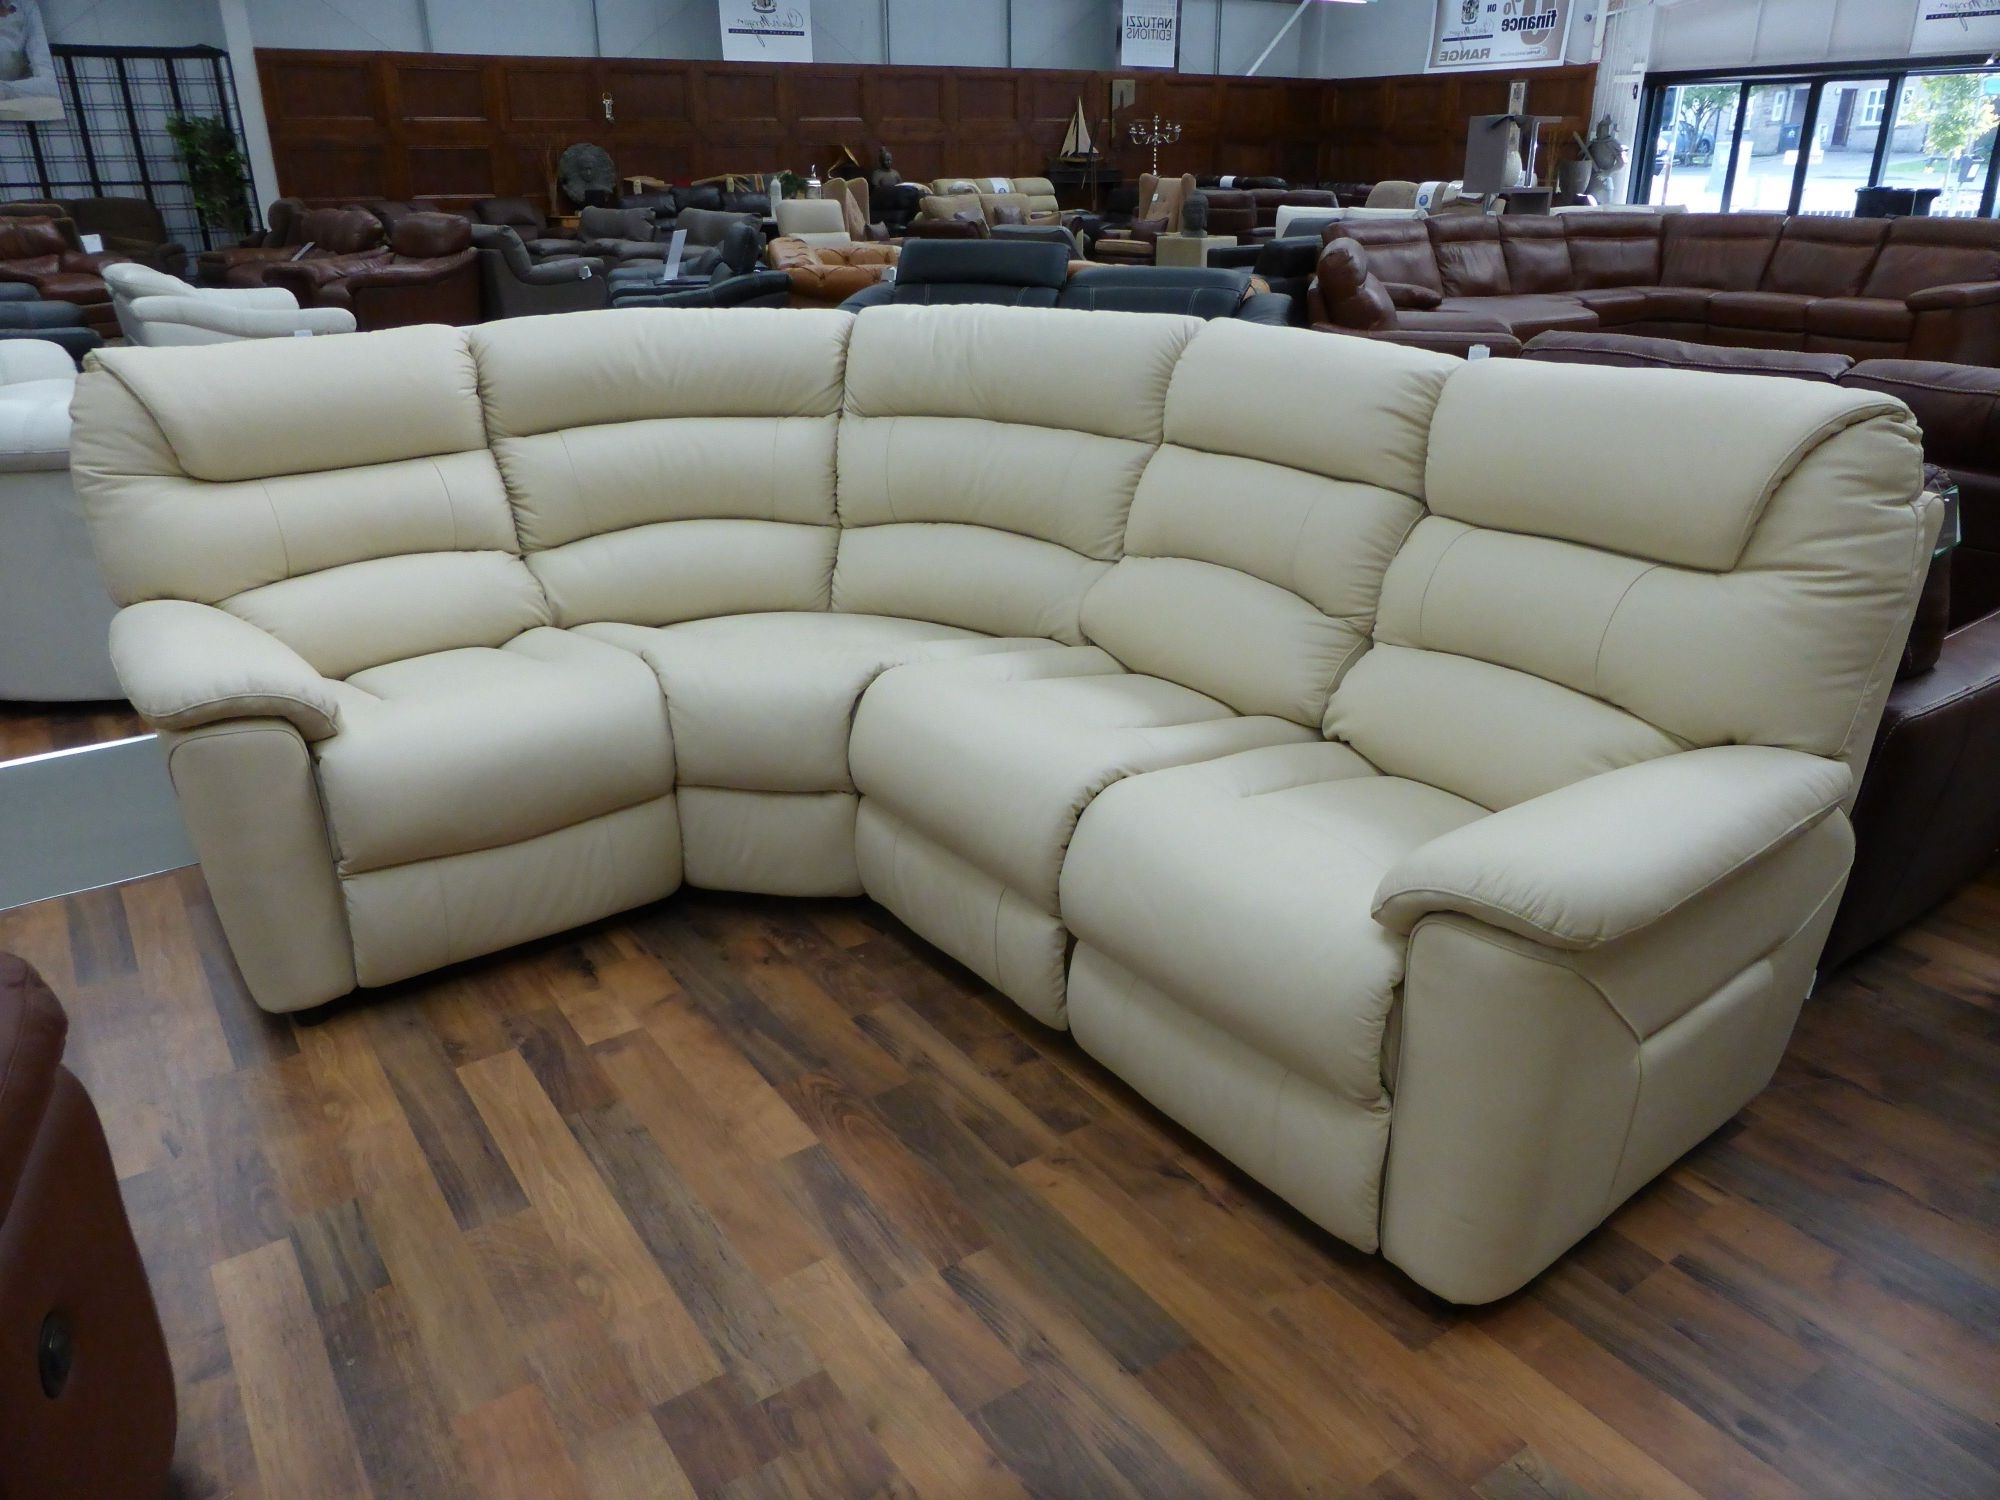 Incredible Laboy Sofa Frame Construction Leather Reclining Within Preferred Sectional Sofas At Lazy Boy (View 4 of 15)